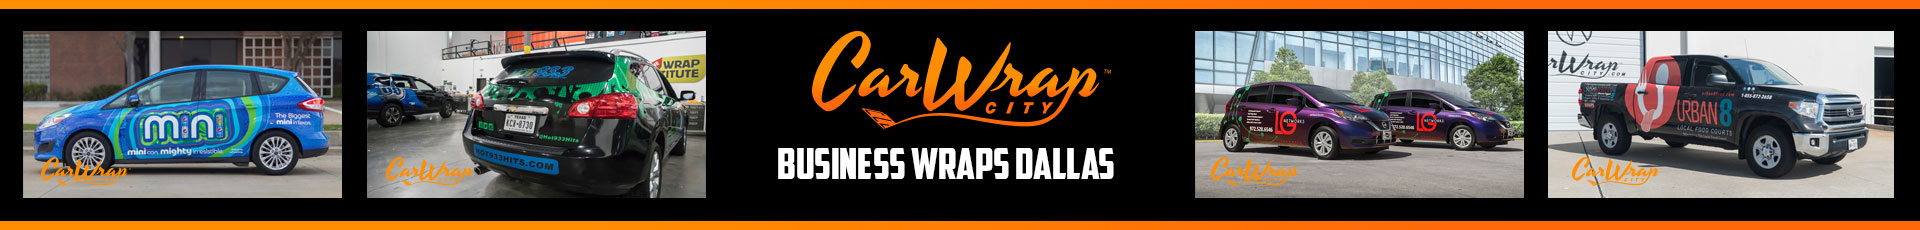 Business Wraps Dallas